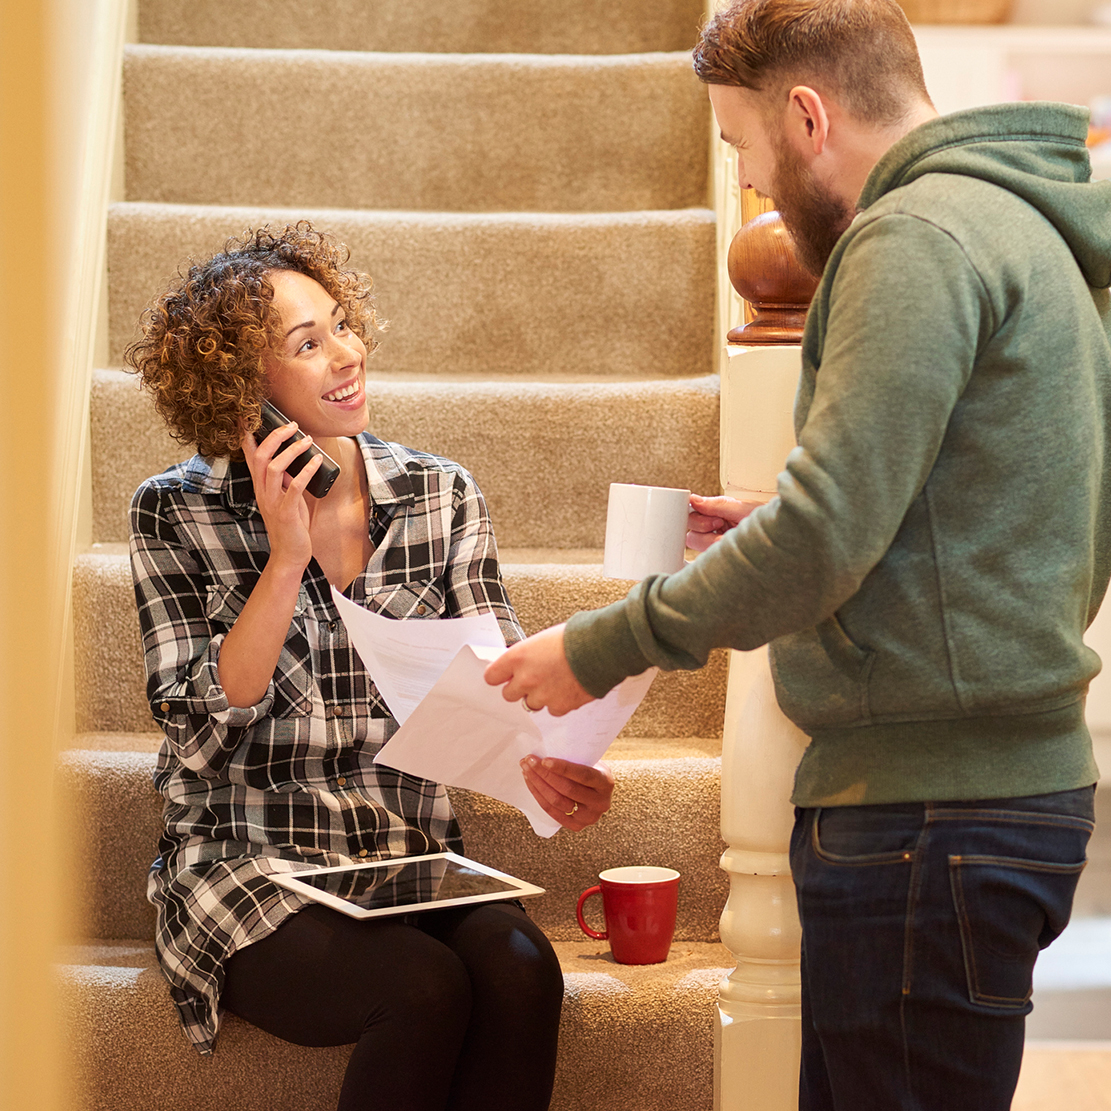 couple standing near their stairs and looking over some paperwork while she makes a phone call